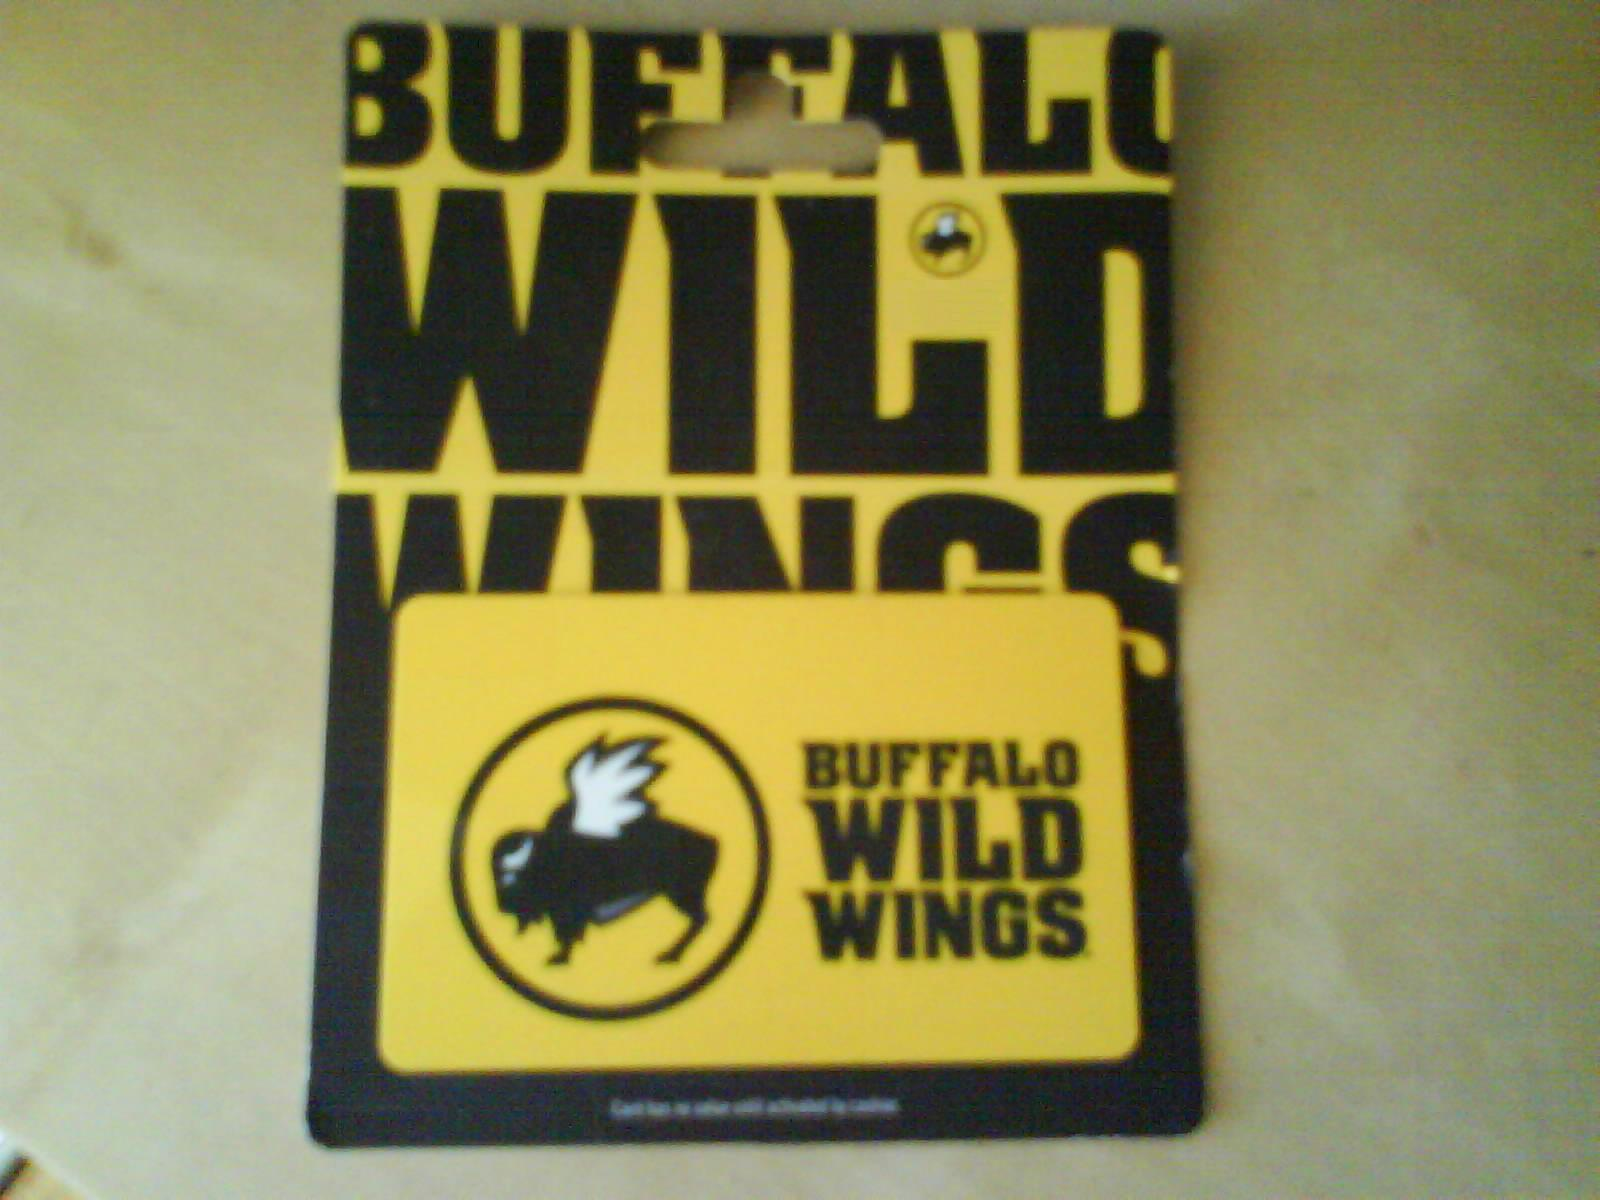 Architecture + Branding: Buffalo Wild Wings emerges from huddle ...